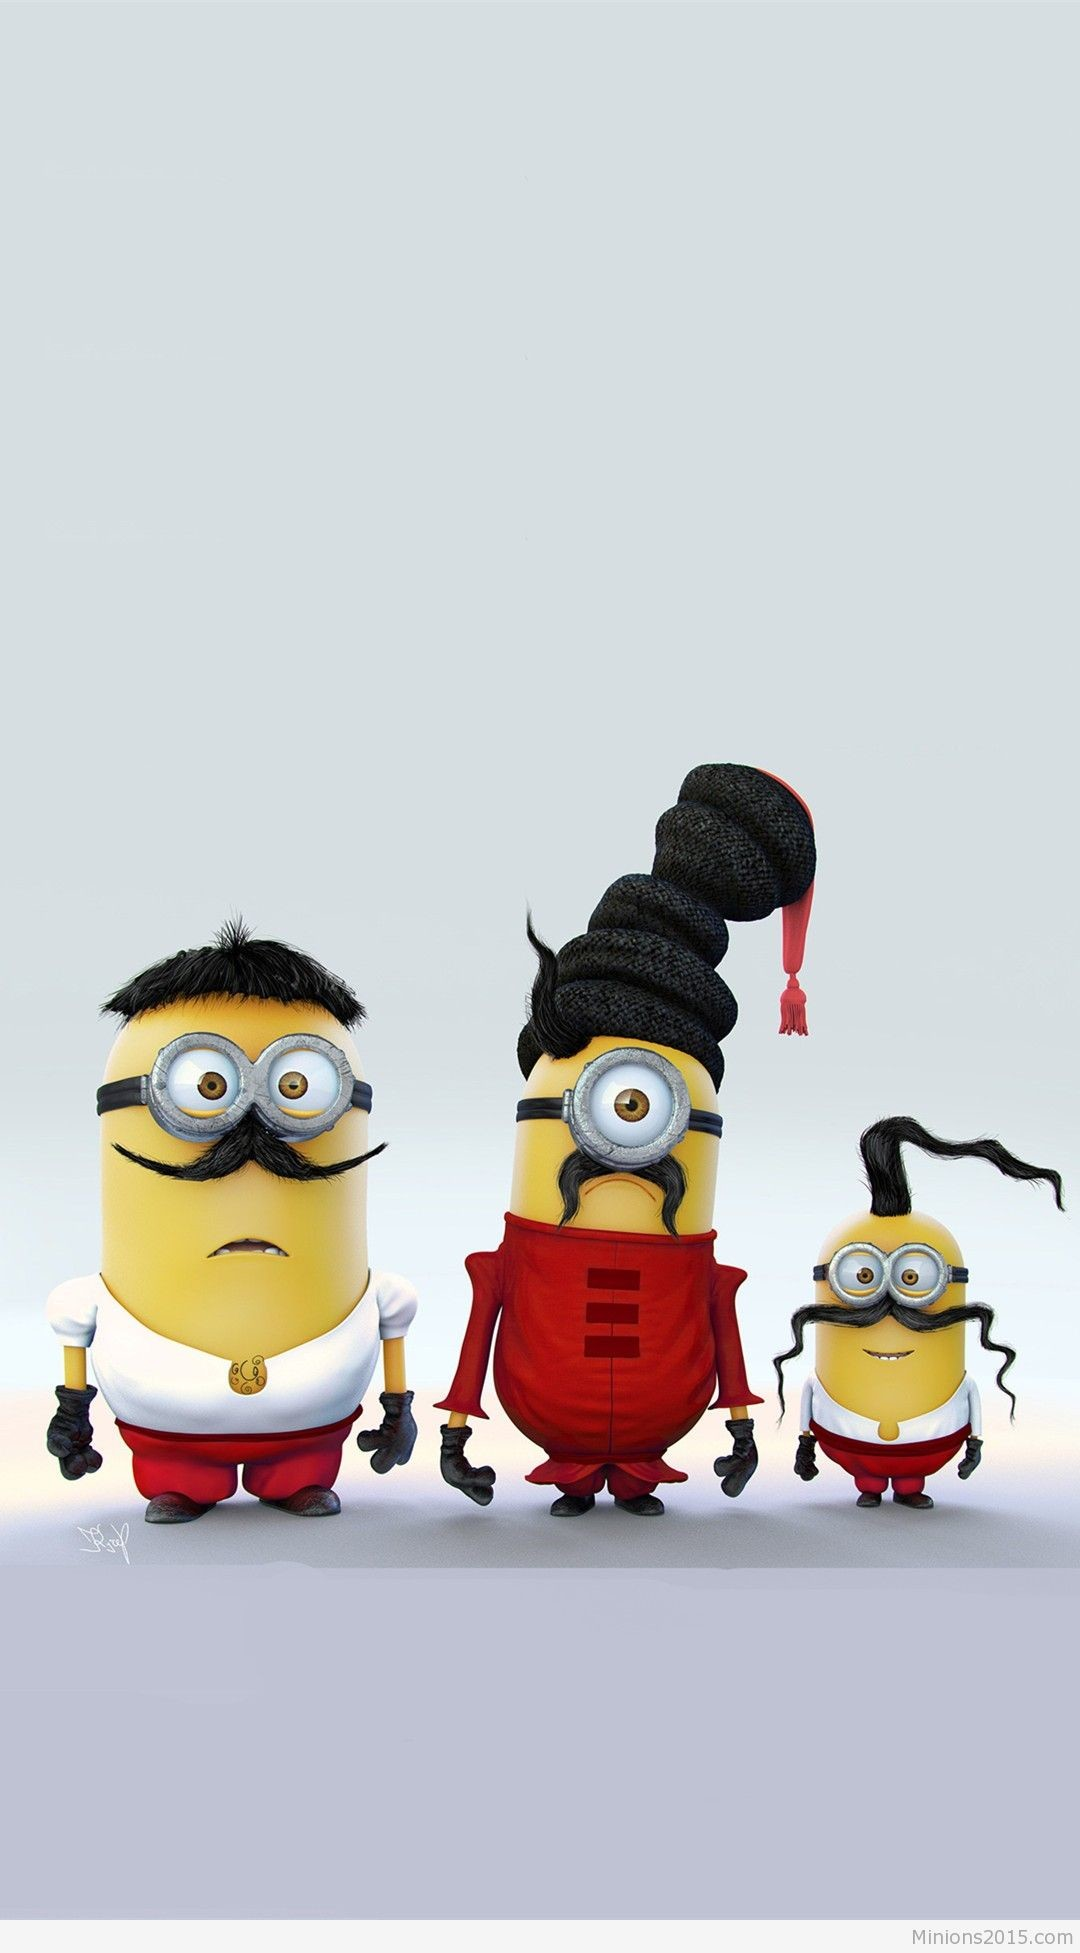 minions with mustache family iphone 6 plus wallpaper – hd 2014 halloween  despicable me-f13952